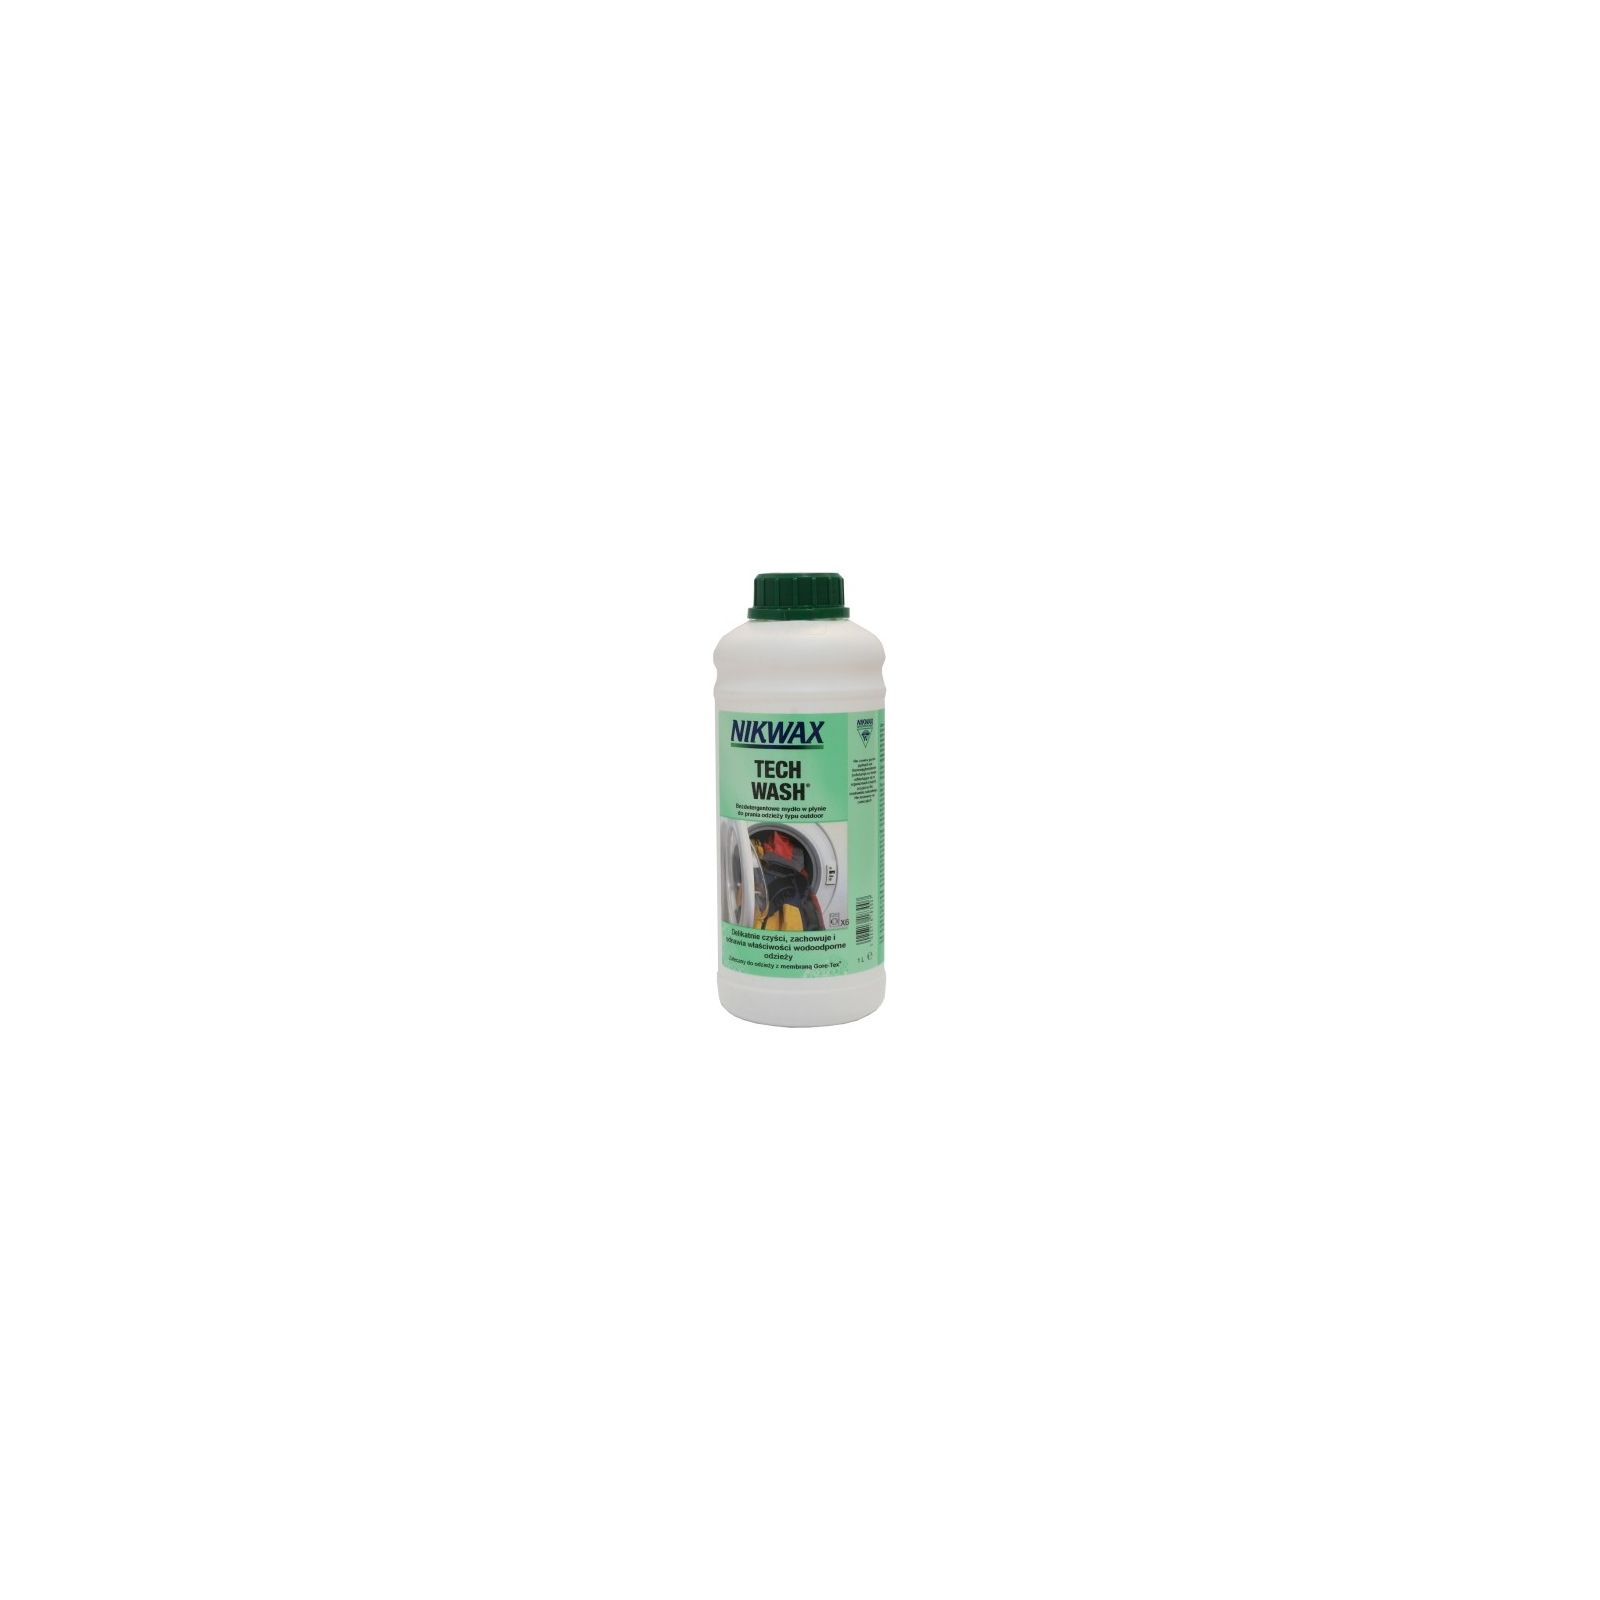 Trespass Nikwax Tech Wash In Cleaner For Outdoor Clothing /& Equipment 1 Litre